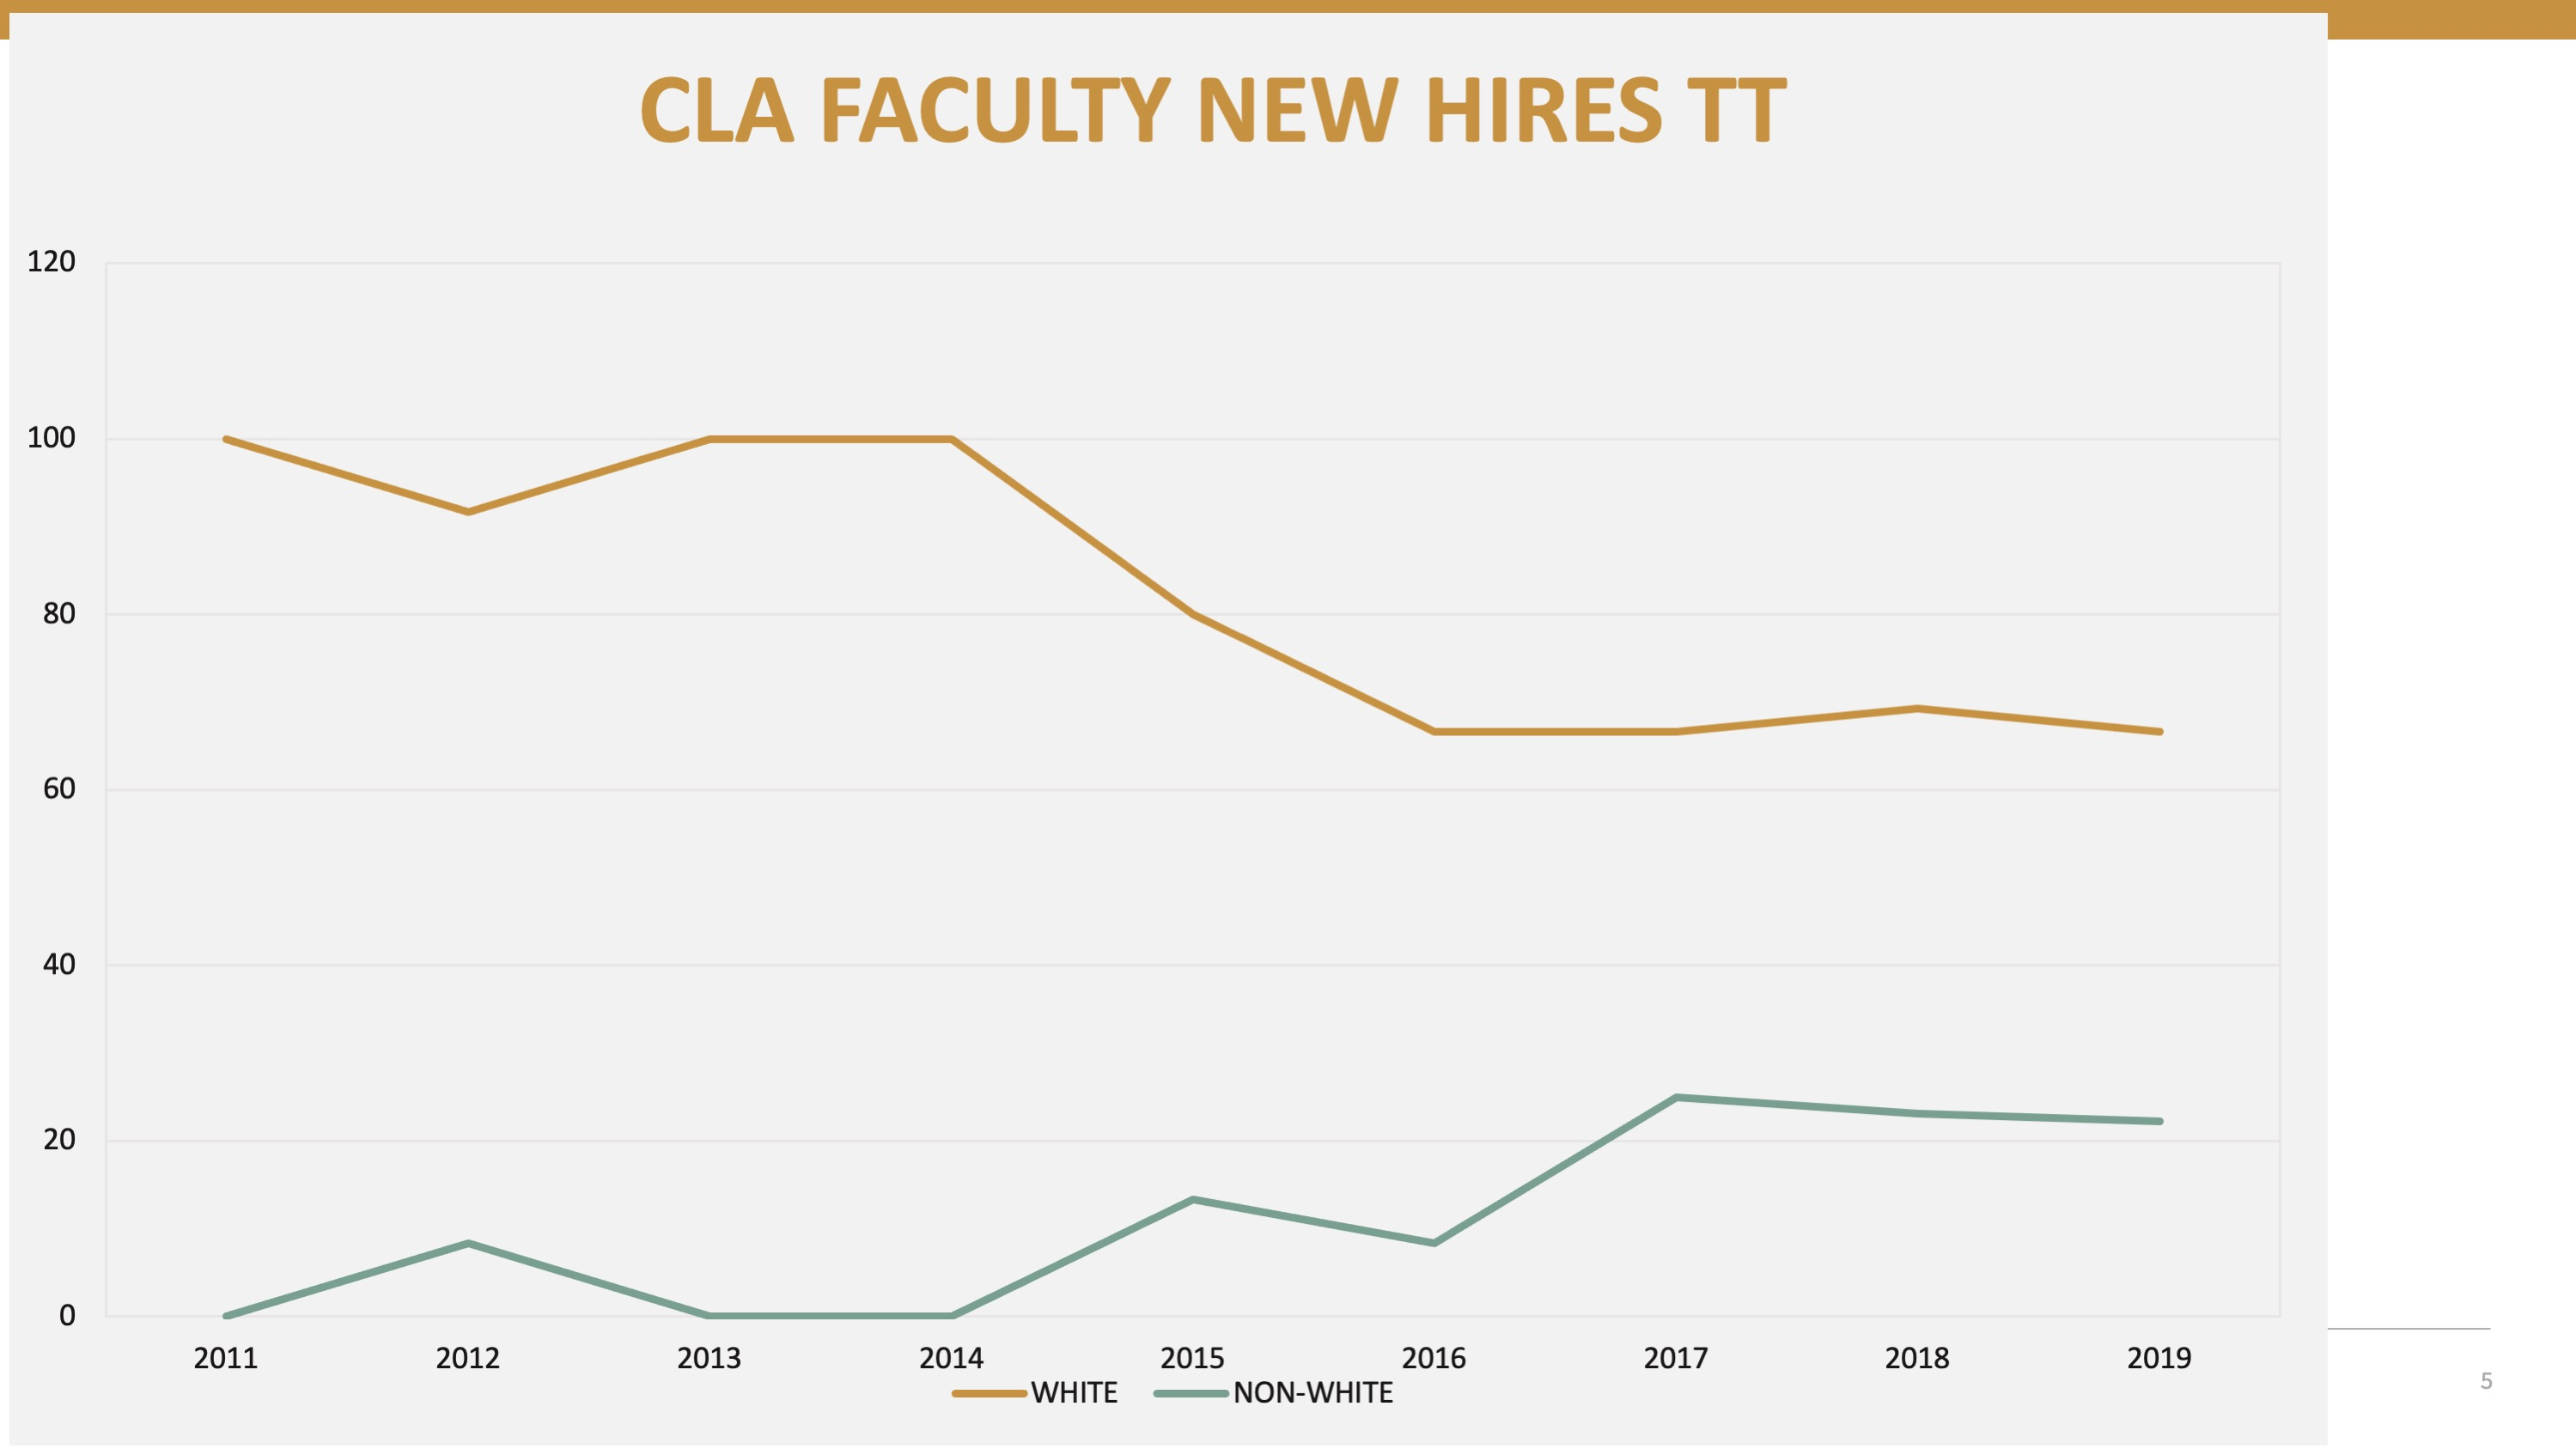 CLA Faculty New Hires